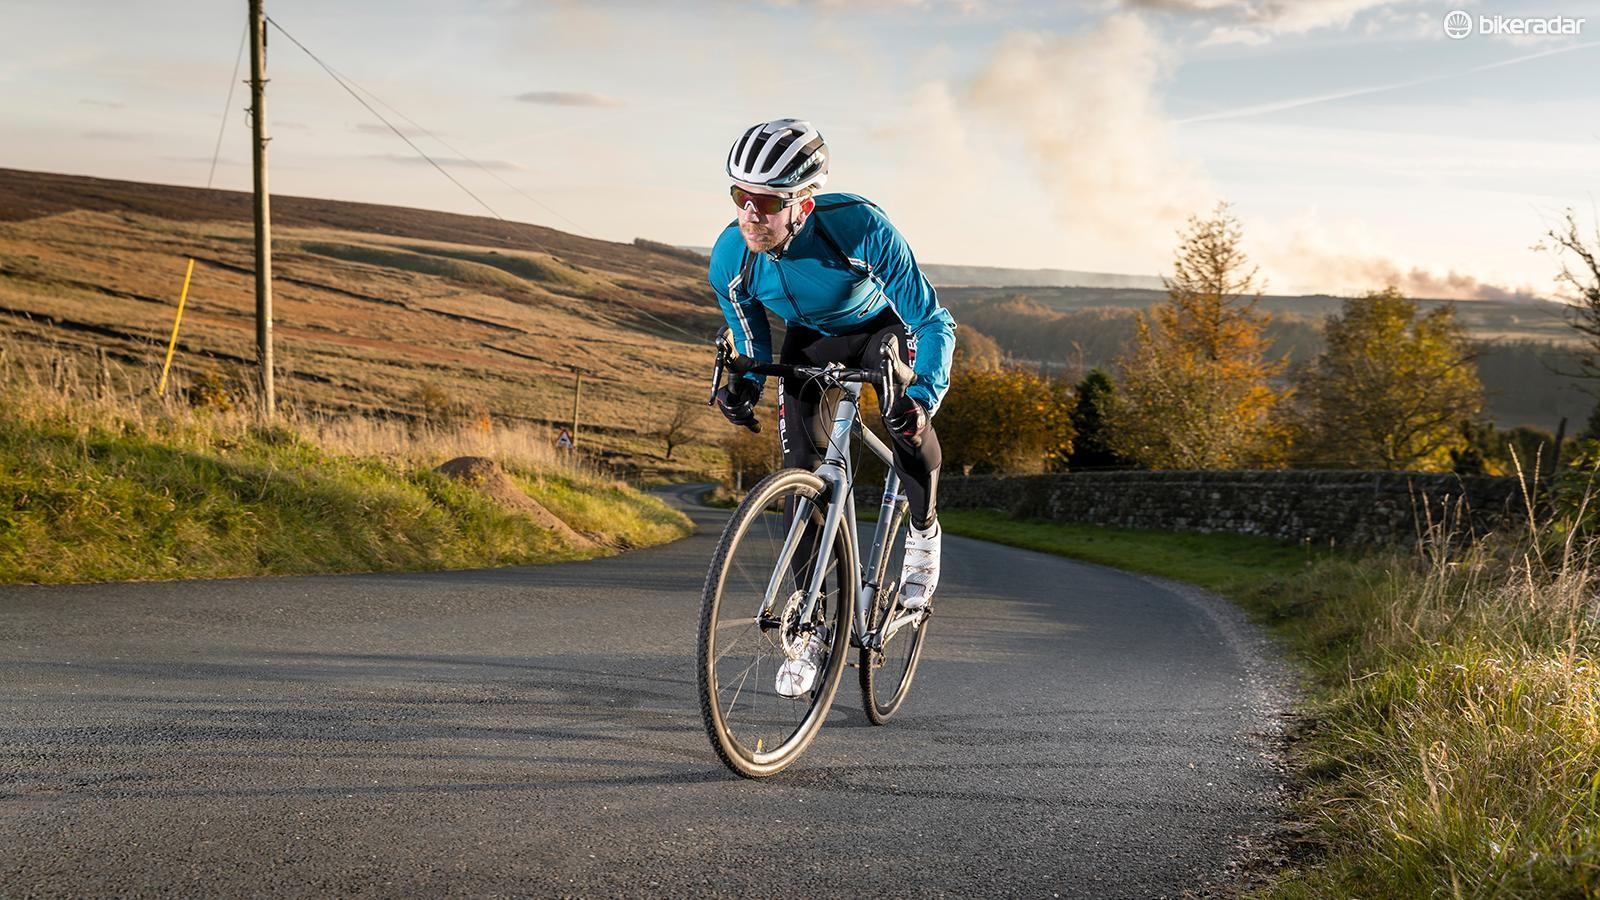 Pick an easier gear as the gradients rise